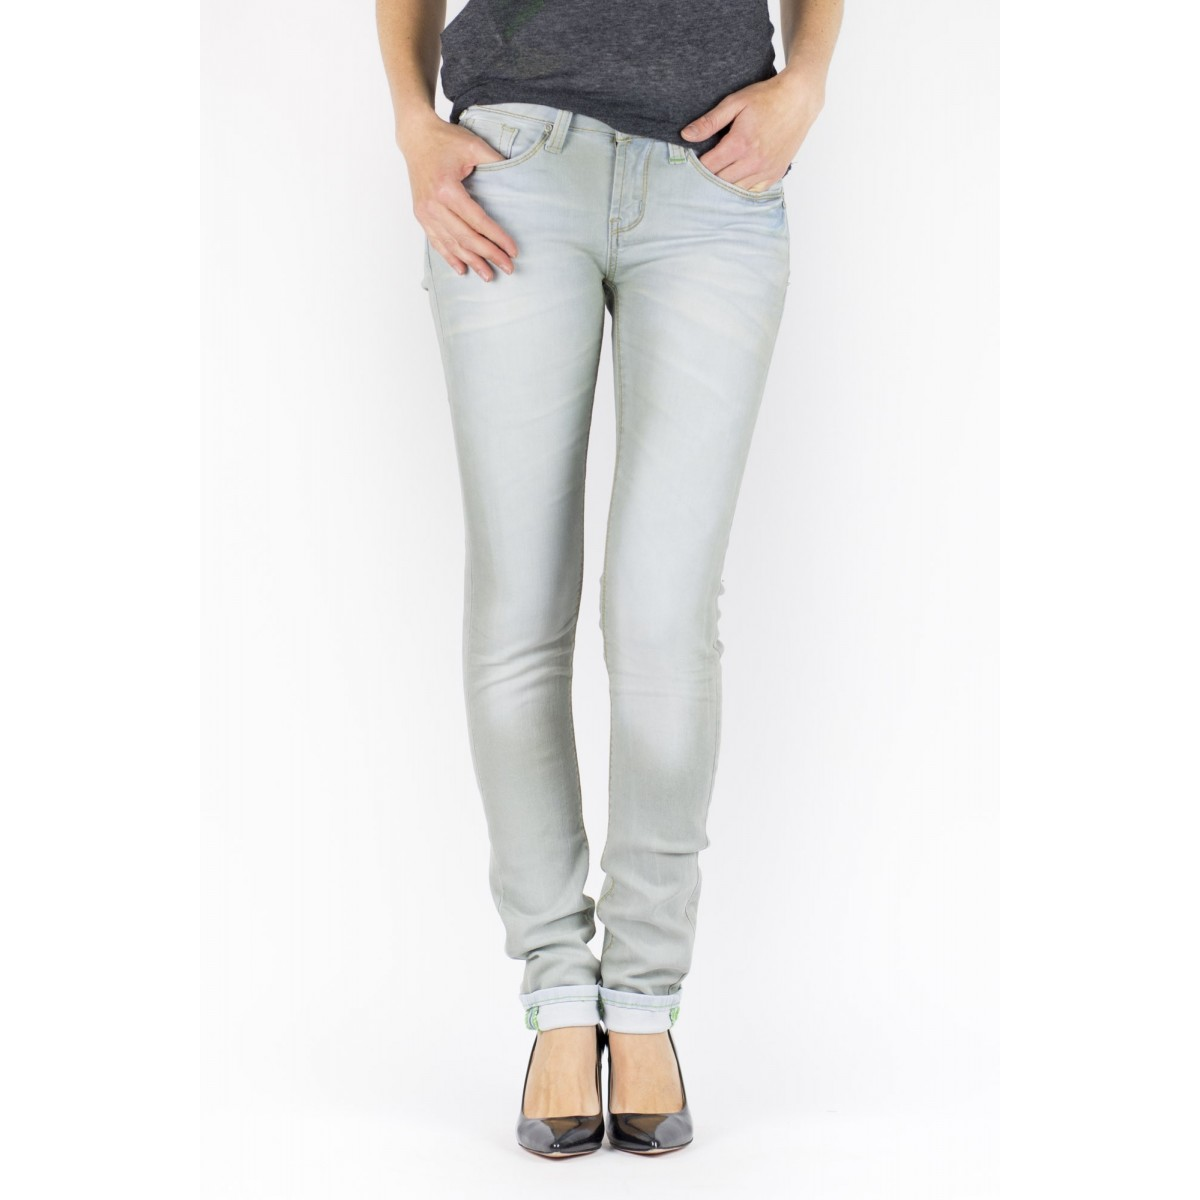 Jeans One Green Elephant Woman - Kosai  2369